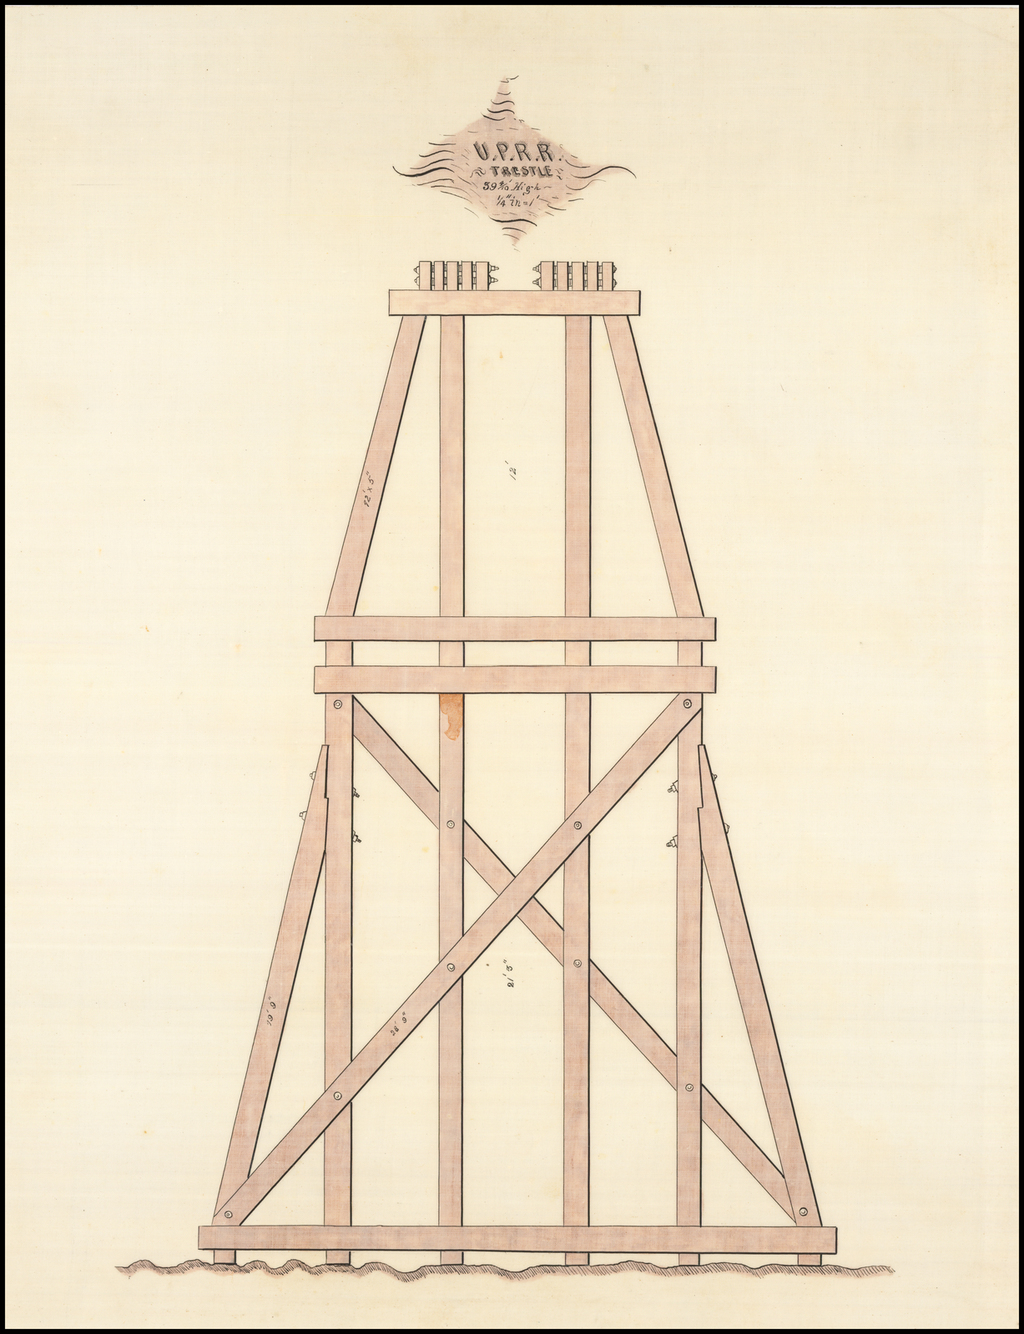 "(UPRR Manuscript Architectural Drawing) U.P.R.R Trestle, 39 4/10' High 1/4"" in=1' By Henry Harding"